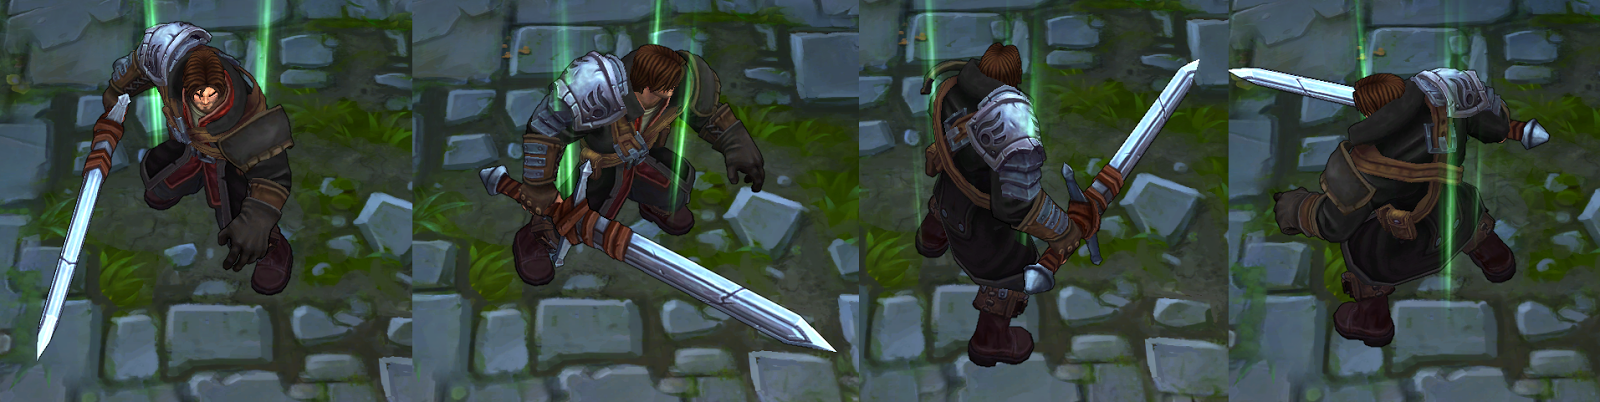 Following Suite Dreadnight Garen Is Much Darker Over All Sporting Hair Alterated Armor And Several Color Changes